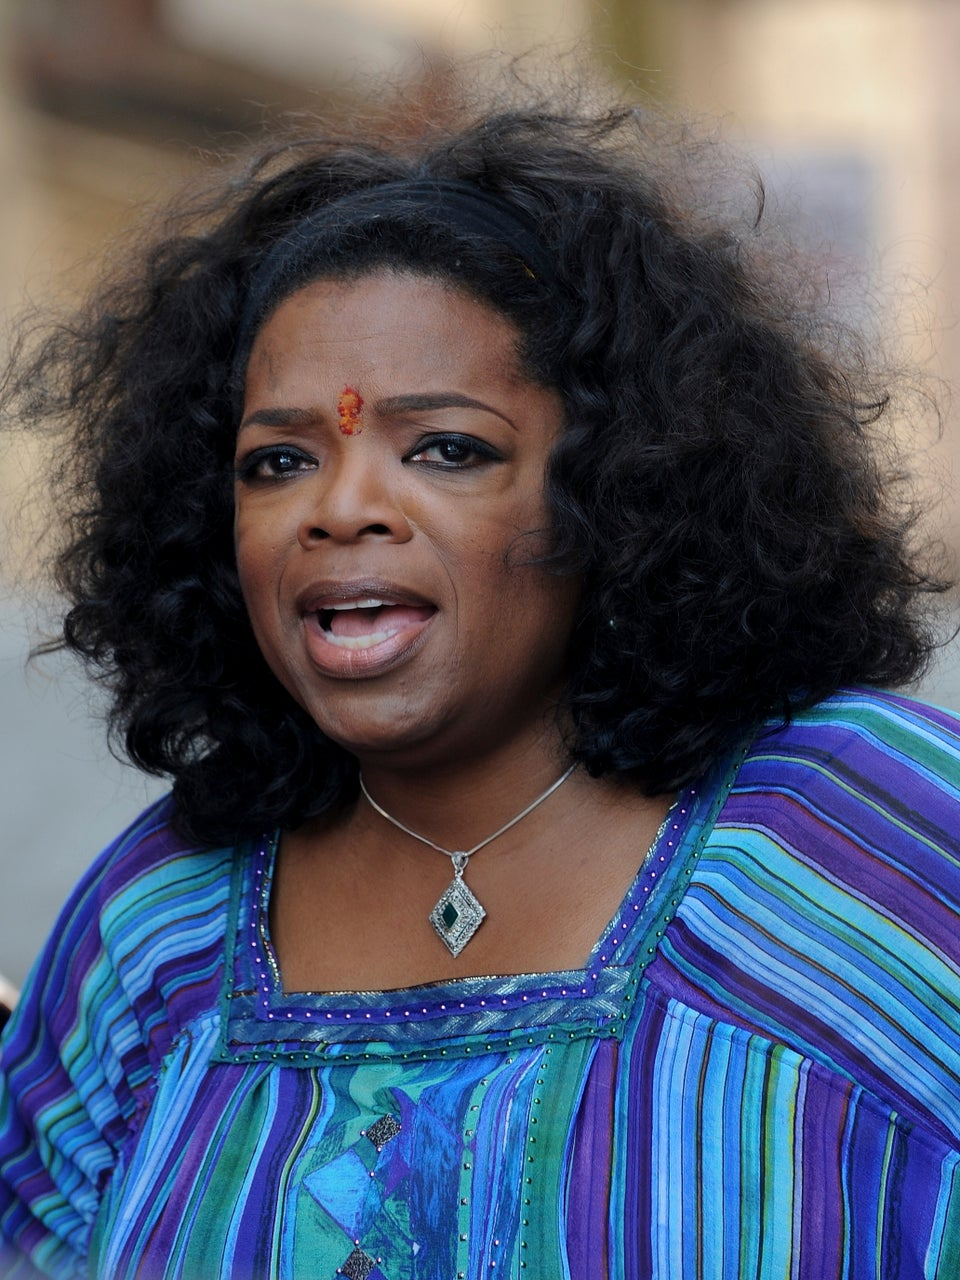 Oprah's Bodyguards Scuffle with Journalists in India